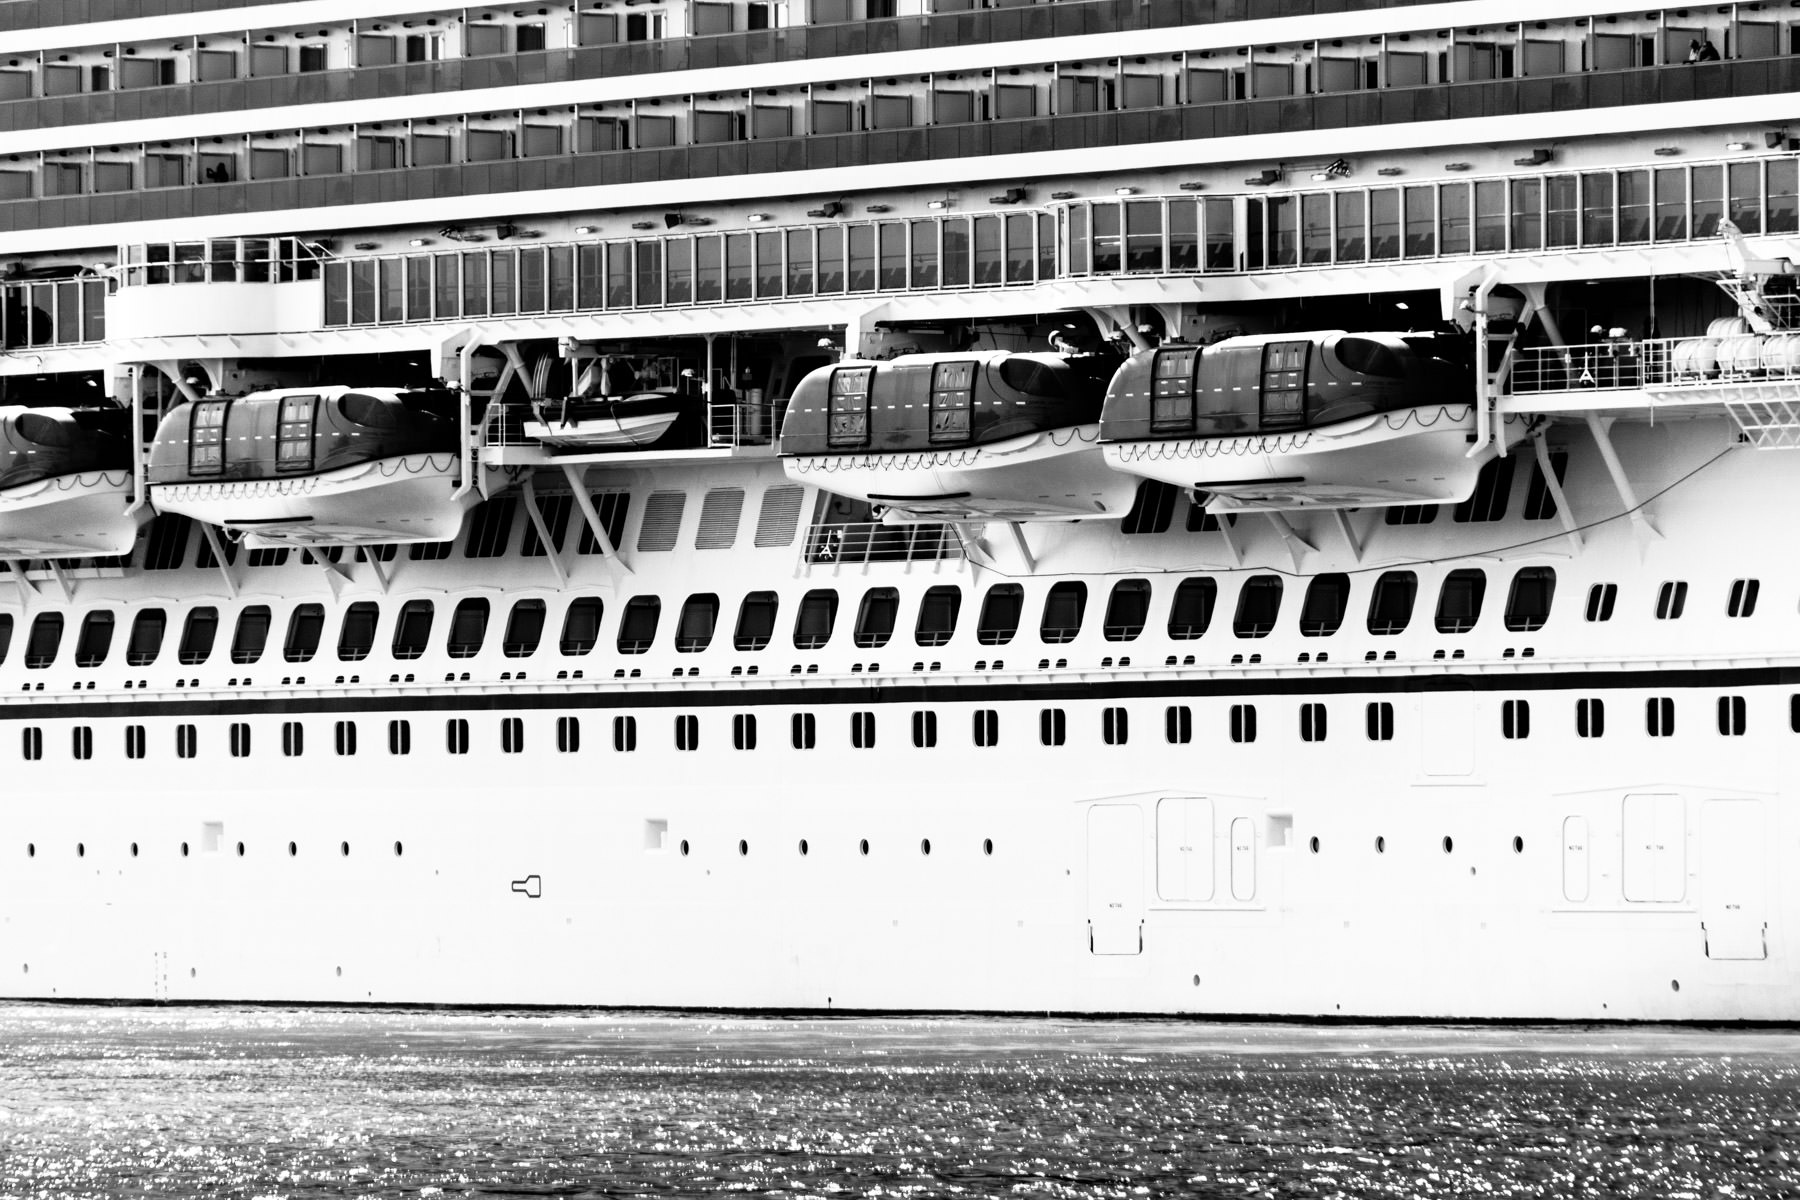 Exterior detail of the Carnival Magic as she sets sail from the Port of Galveston, Texas.